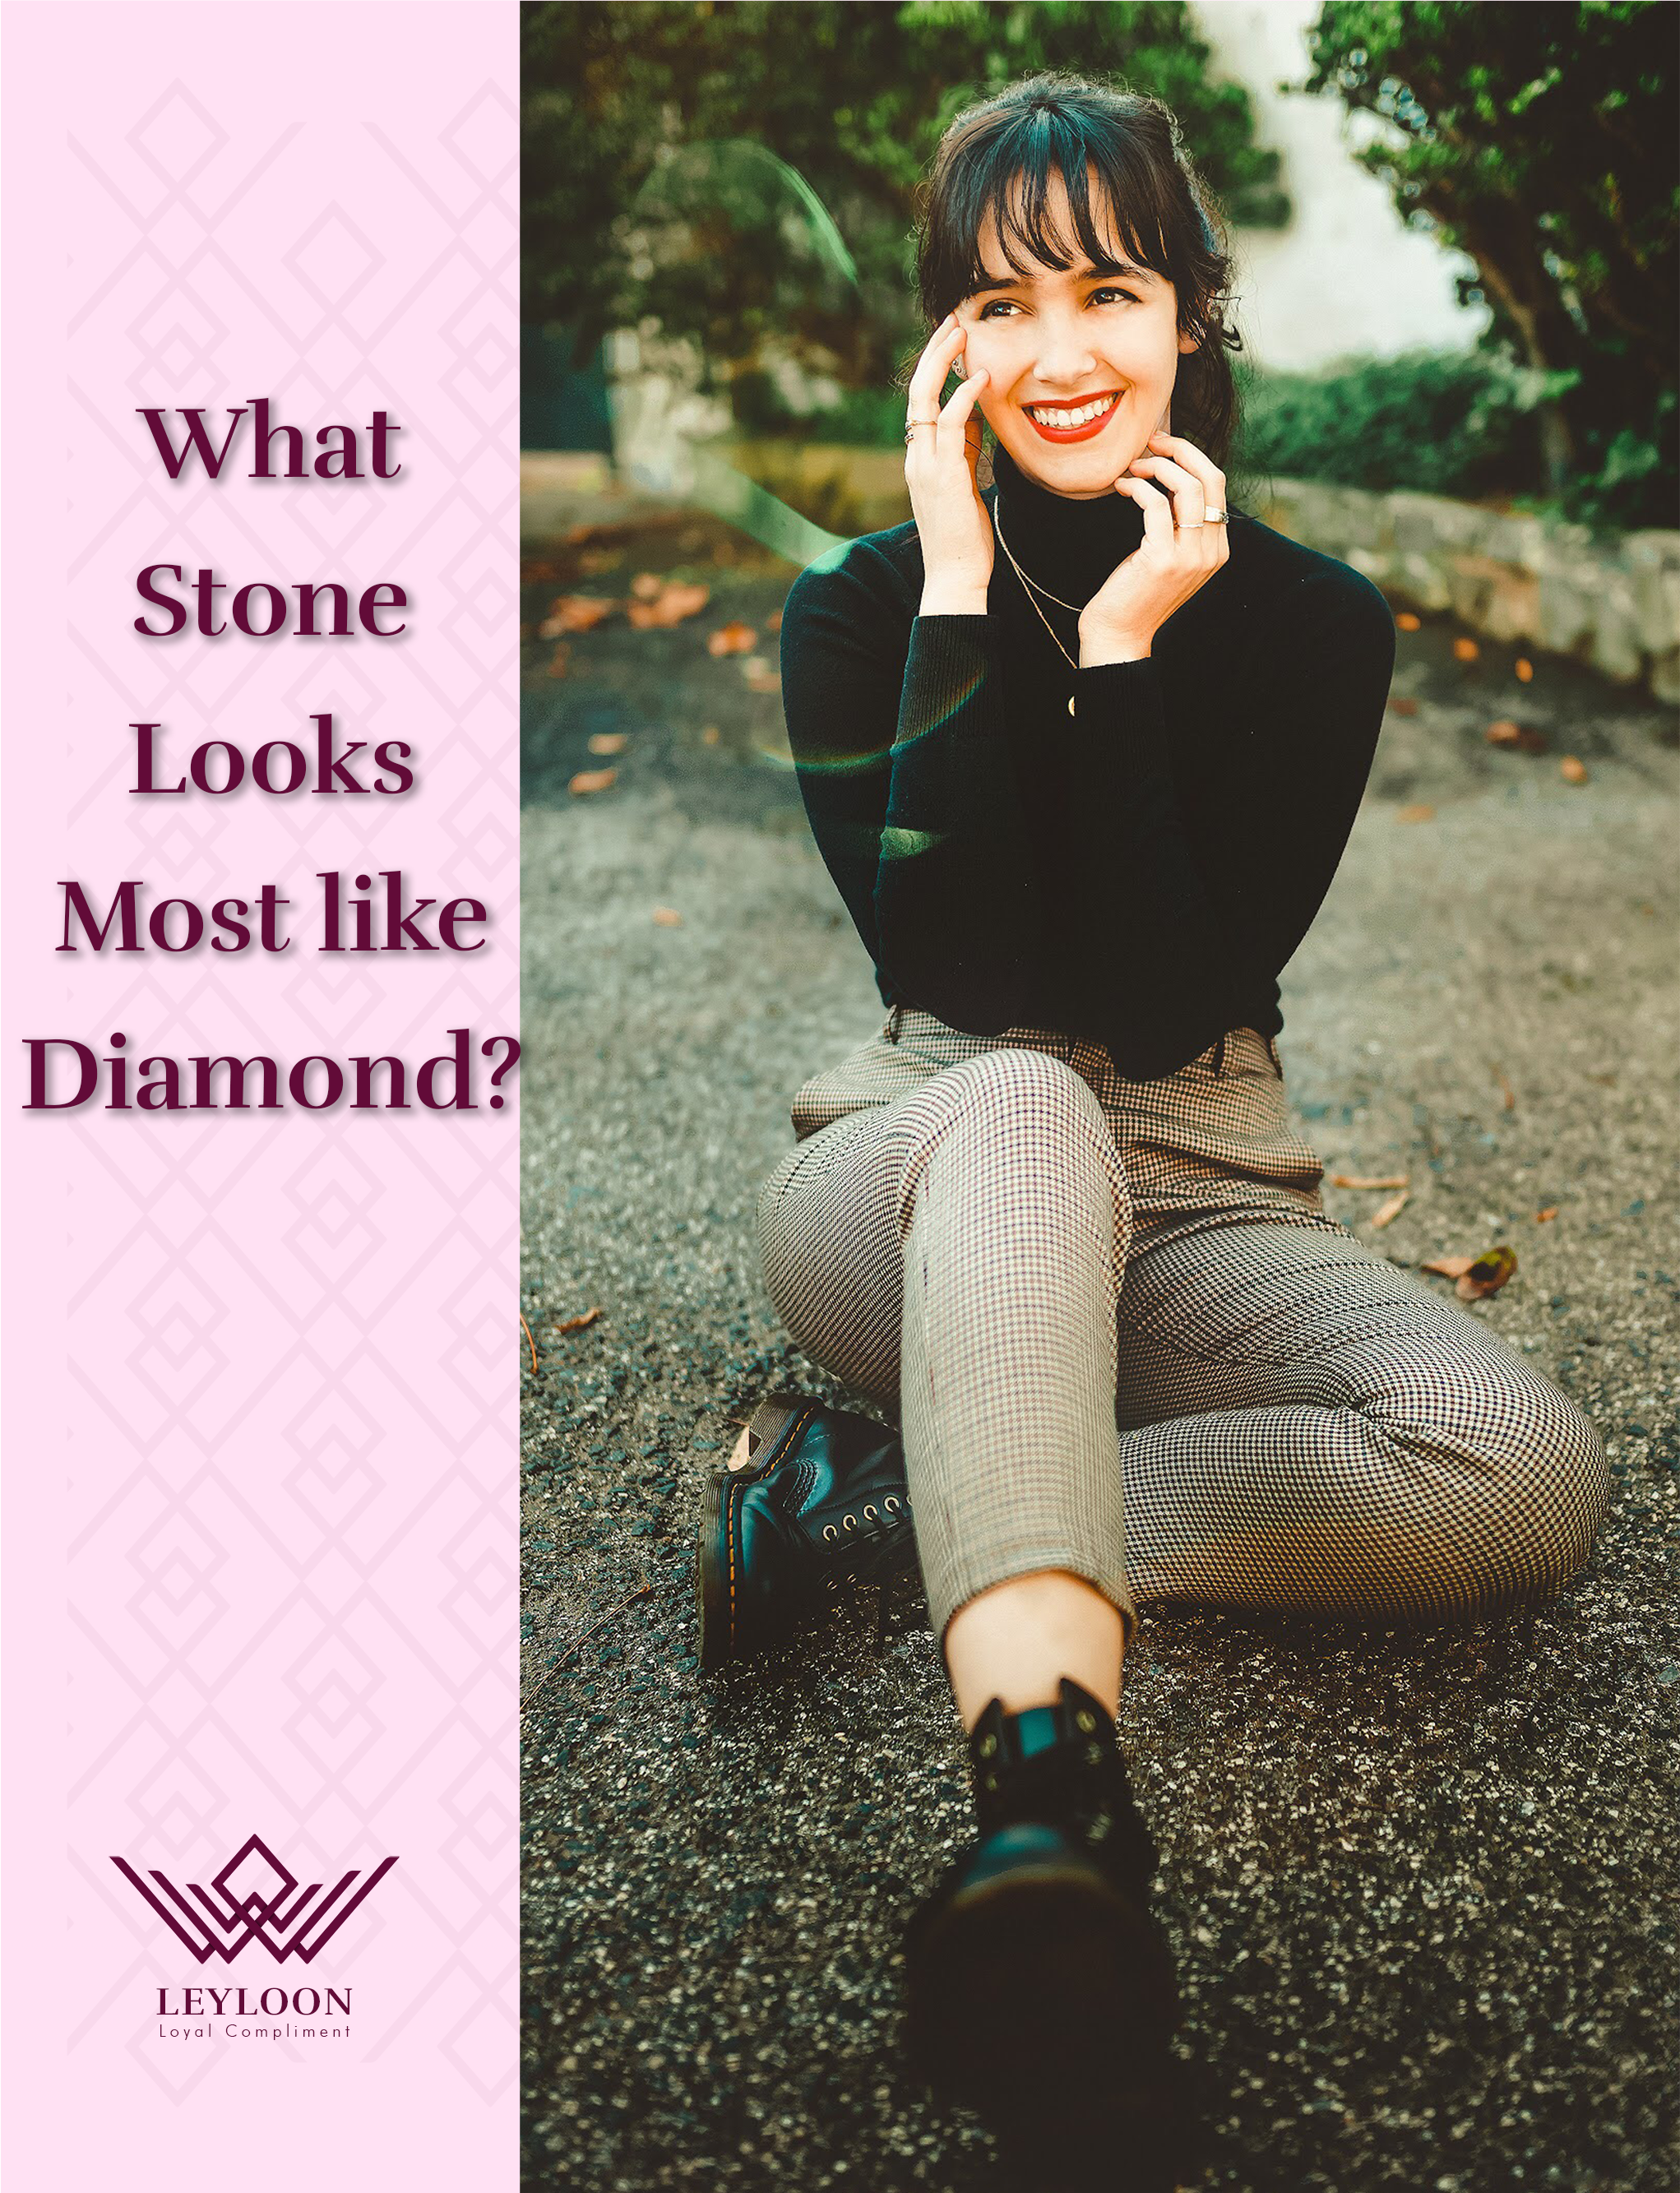 What Stone Looks Most like Diamond?